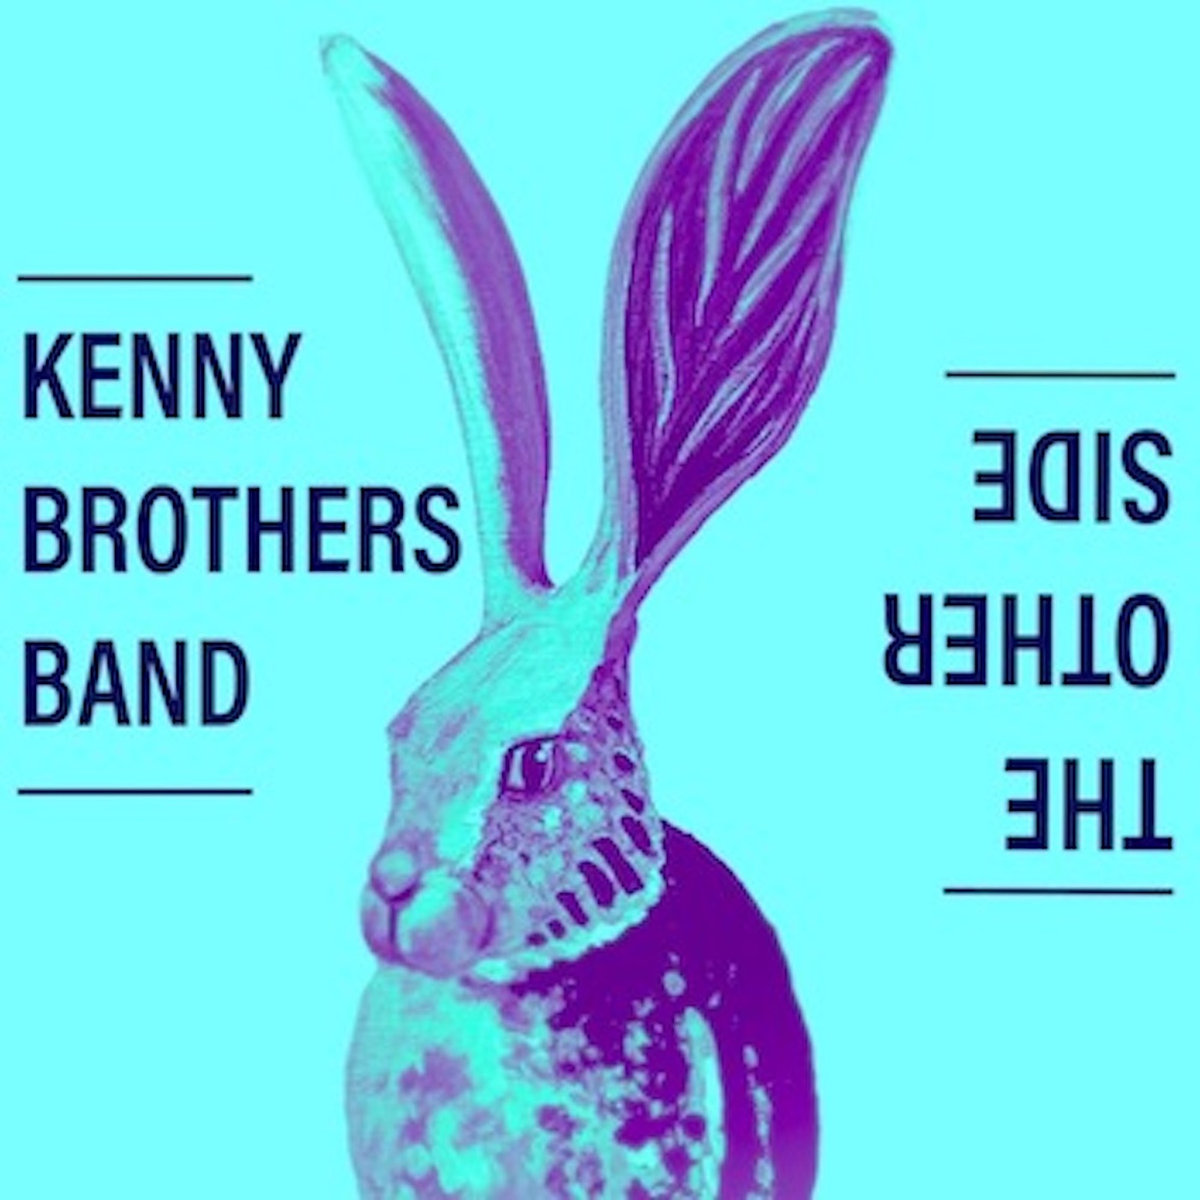 Kenny Brothers Band – The Other Side